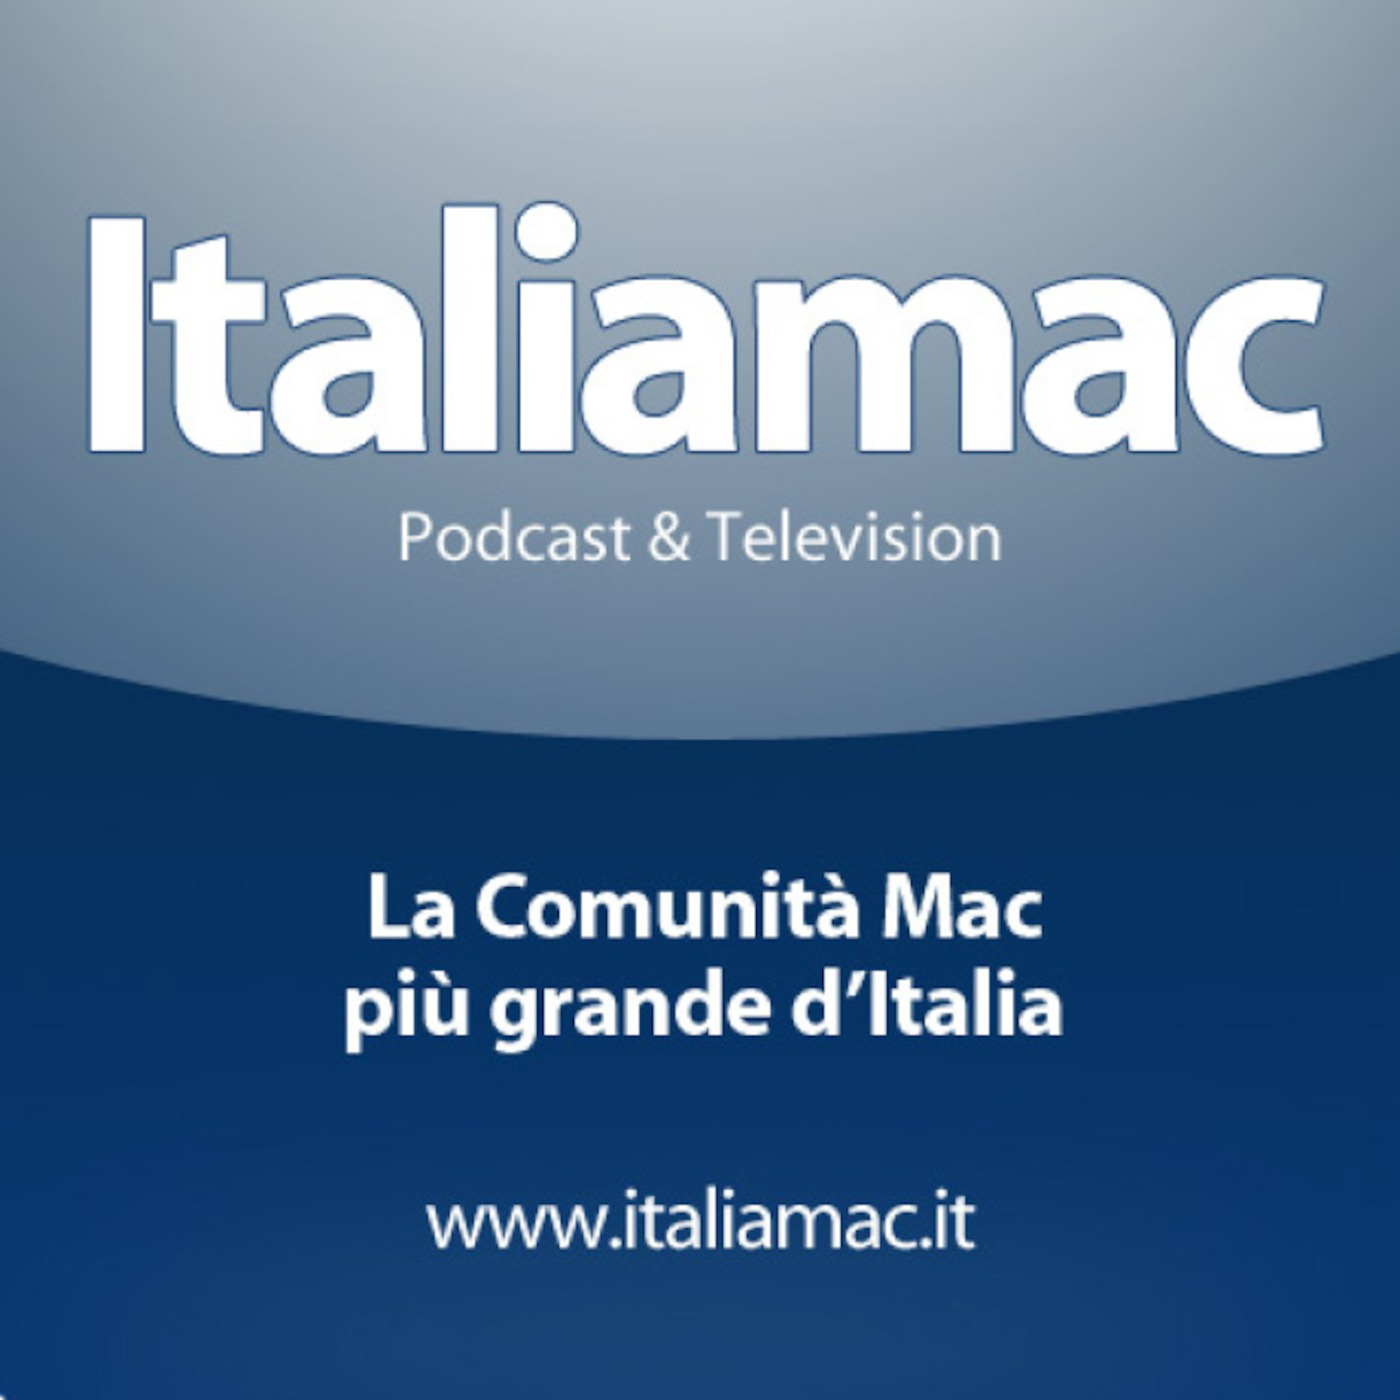 Italiamac Podcast